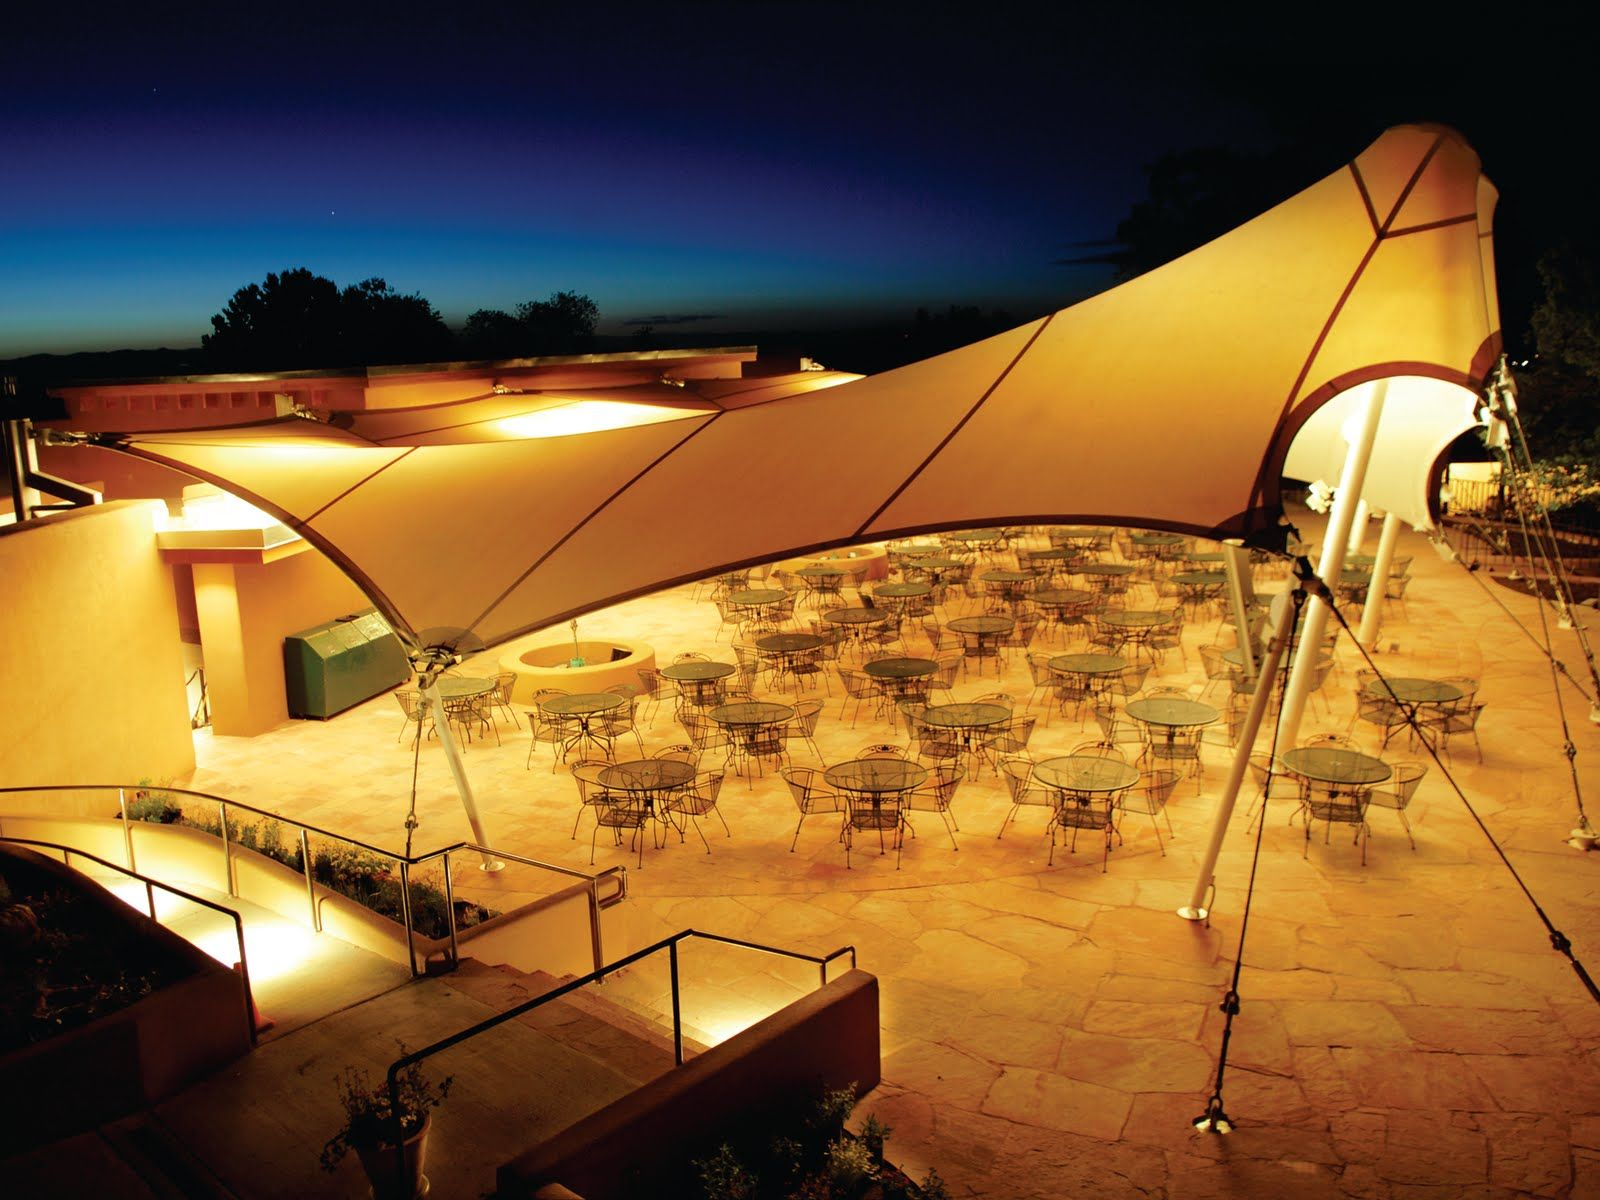 Fabritec structures the leaders in tension tensile membrane and fabric structure architecture